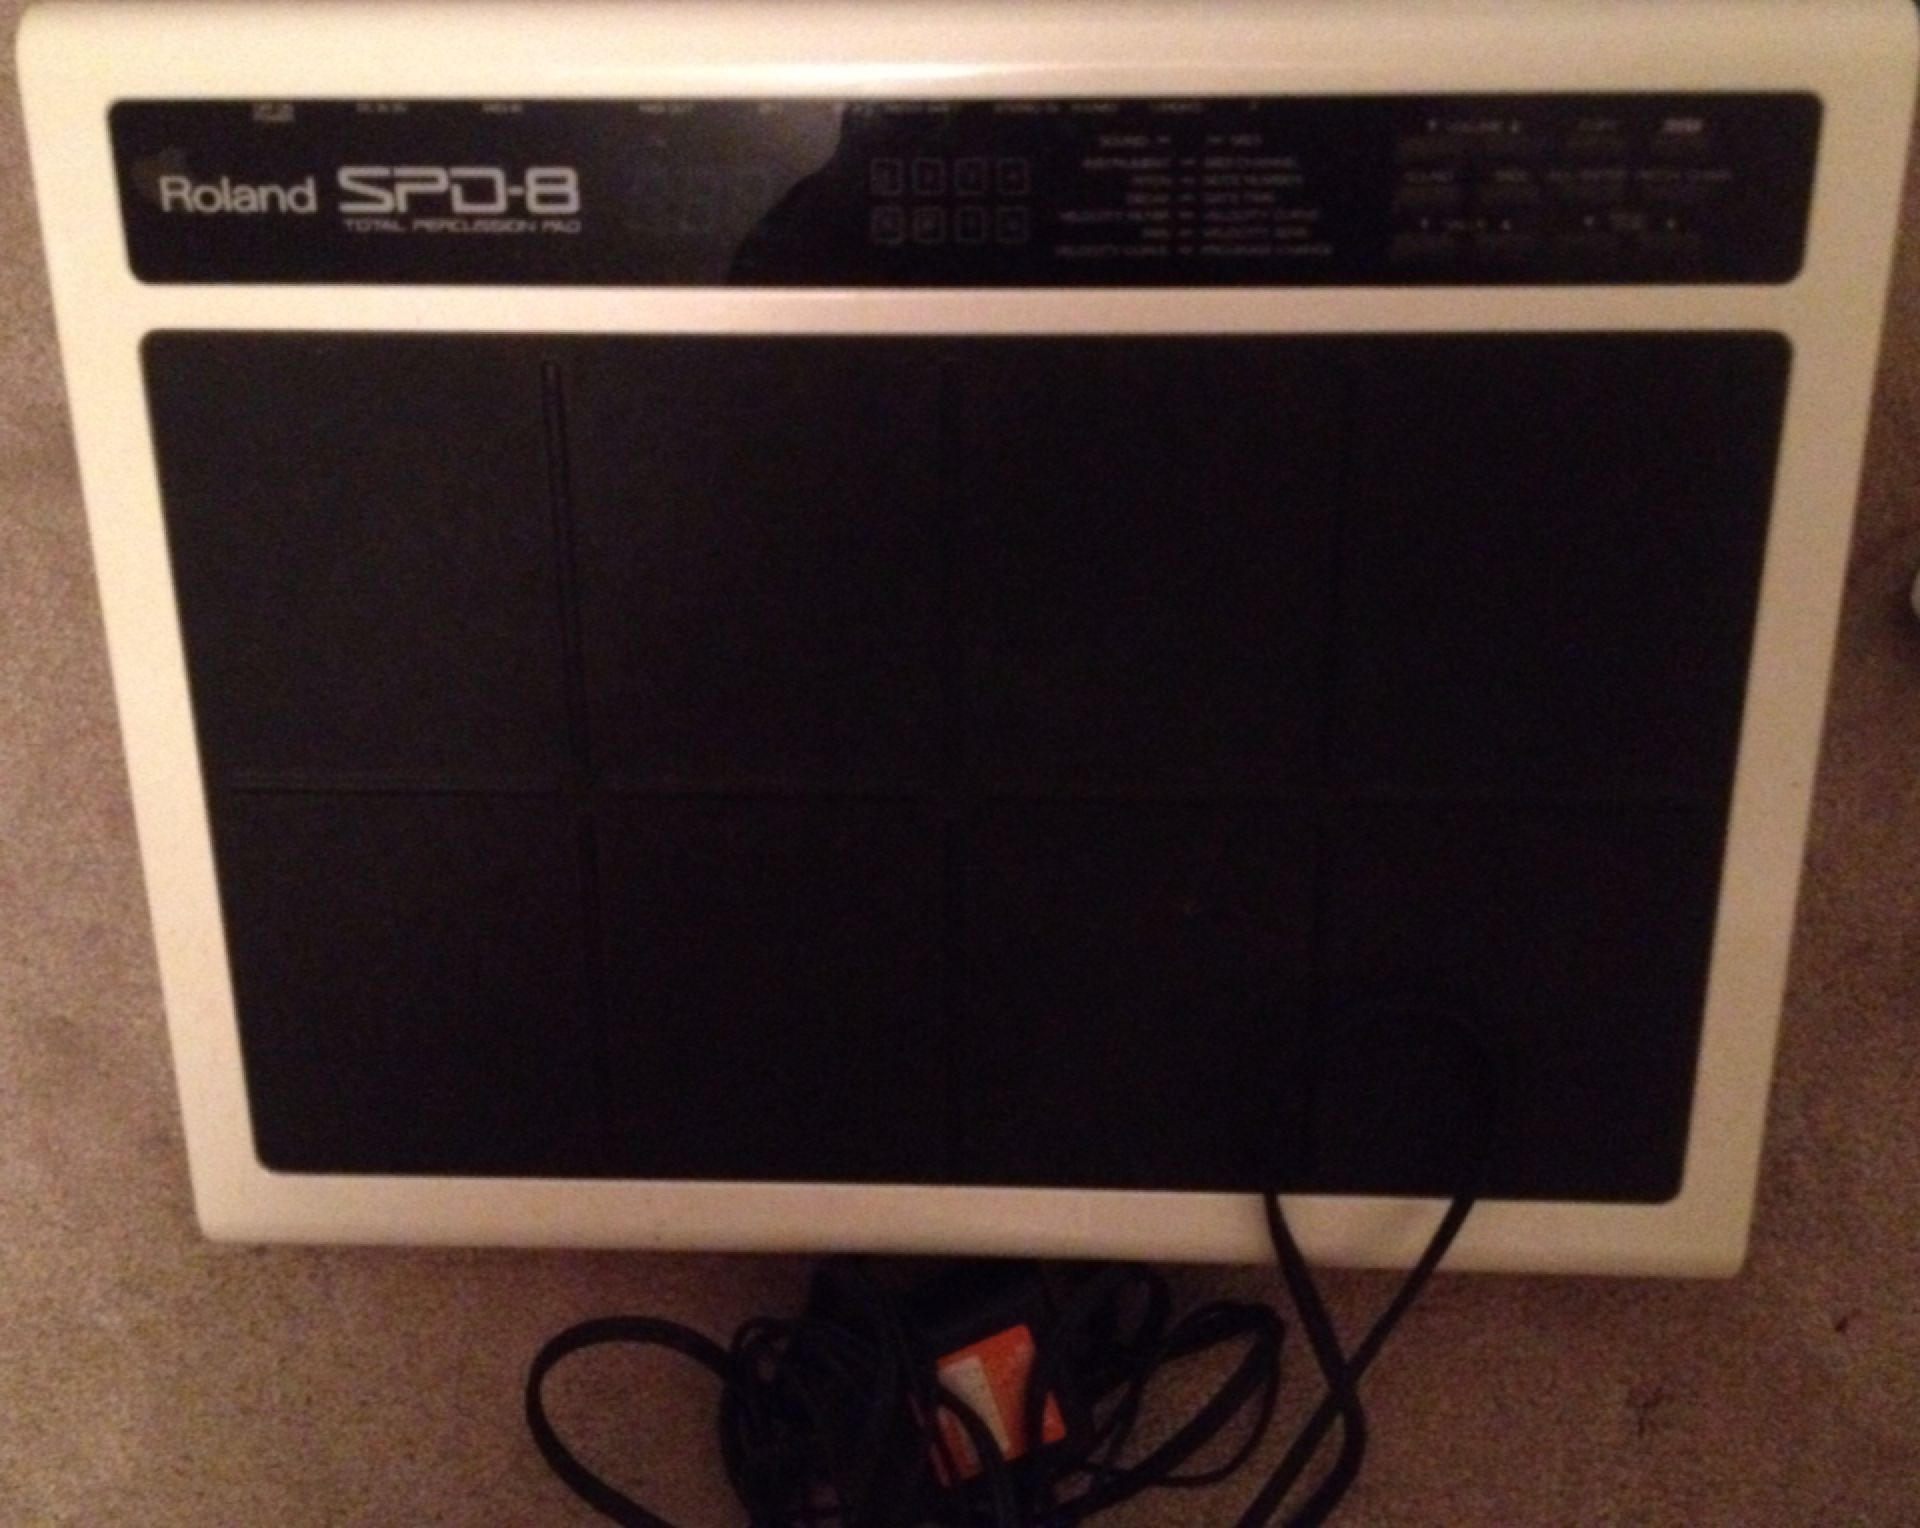 Ongebruikt Find more Roland Spd8 Spd-8 Drum Percussion Pad Midi for sale at OP-36